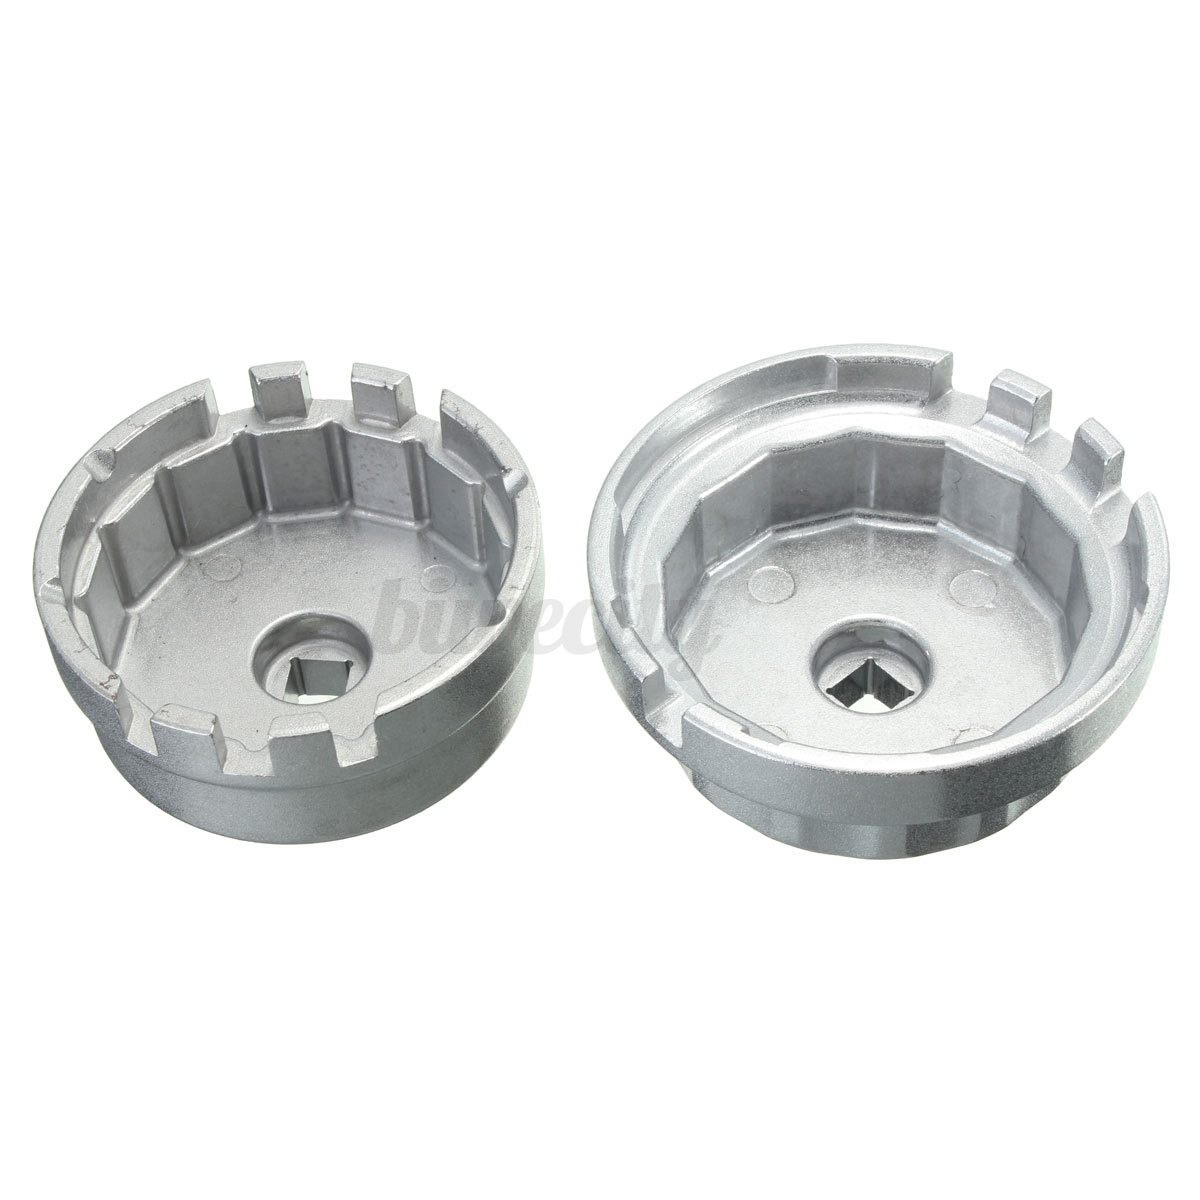 2Pcs Oil Filter Cup Wrench Set 64.5mm 14 Flute Fit For